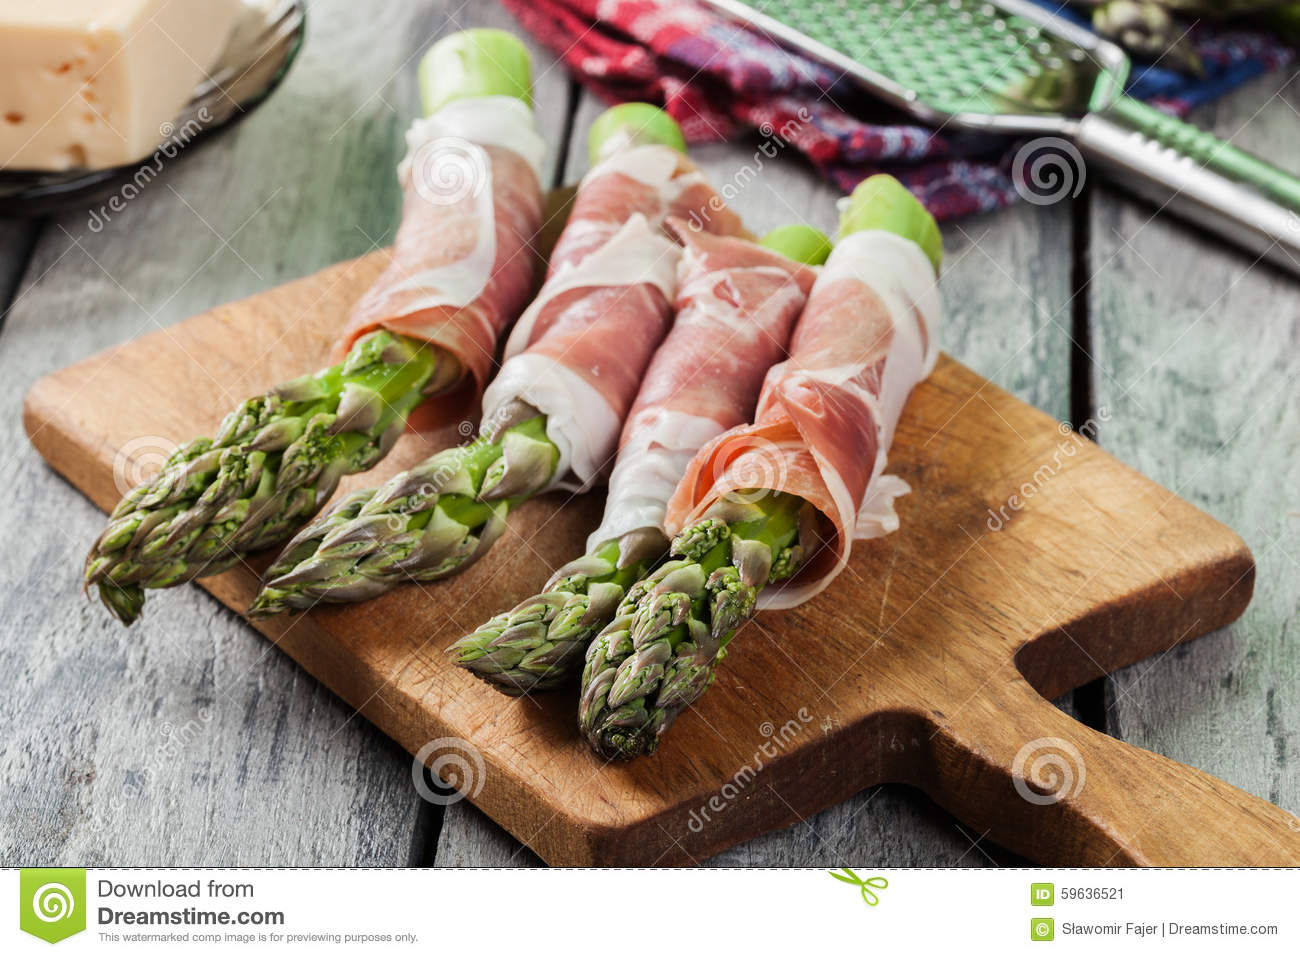 Prosciutto Wrapped Green Asparagus Stock Photo - Image: 59636521